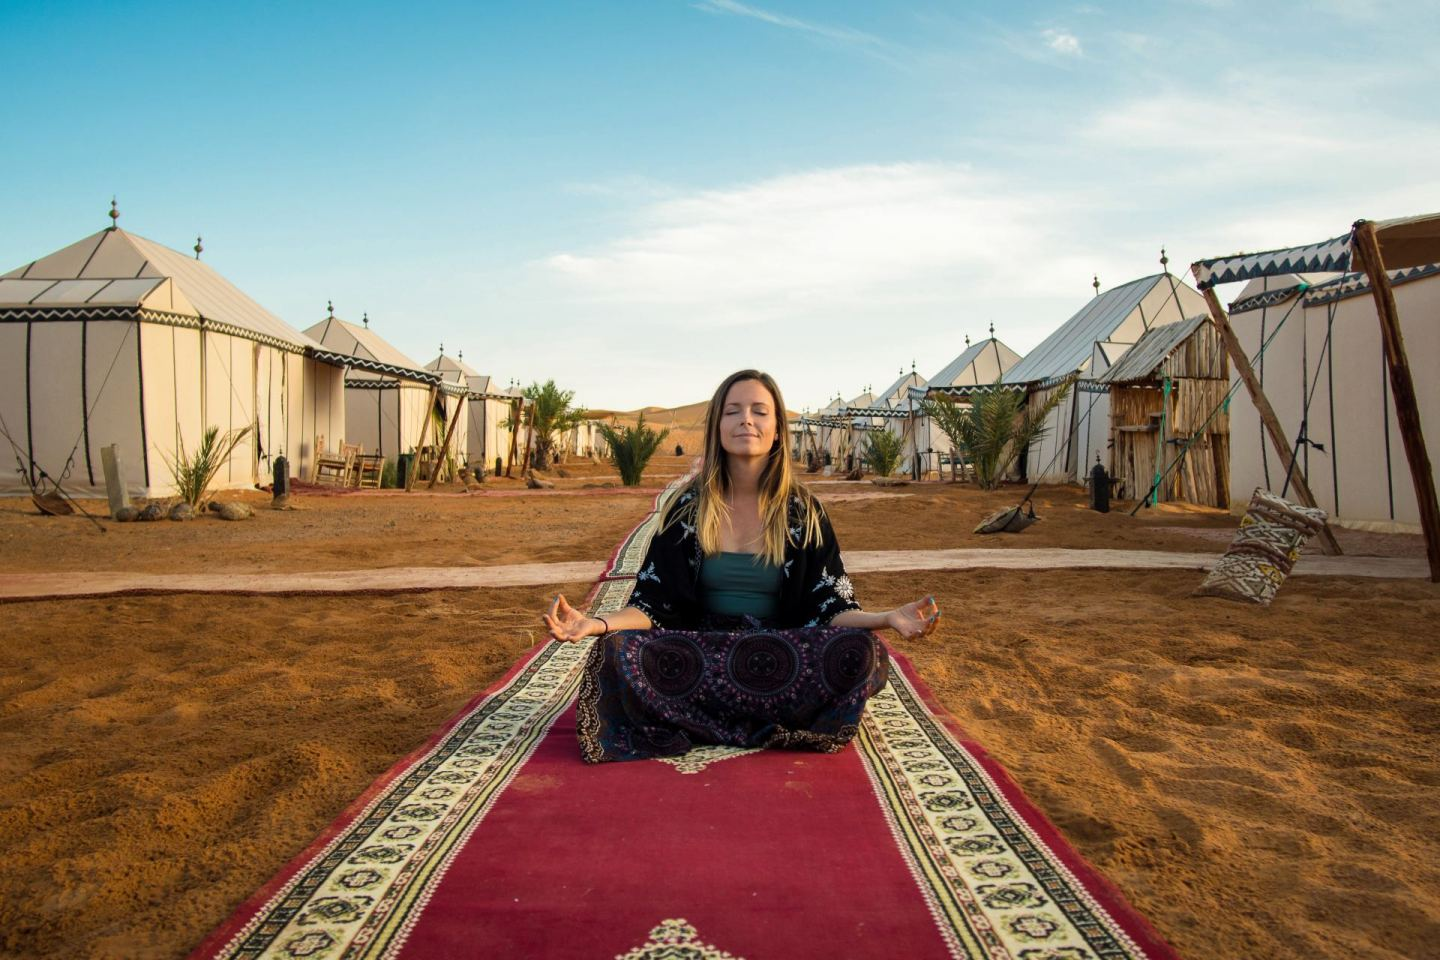 Morocco: One Week Itinerary with Glamping!